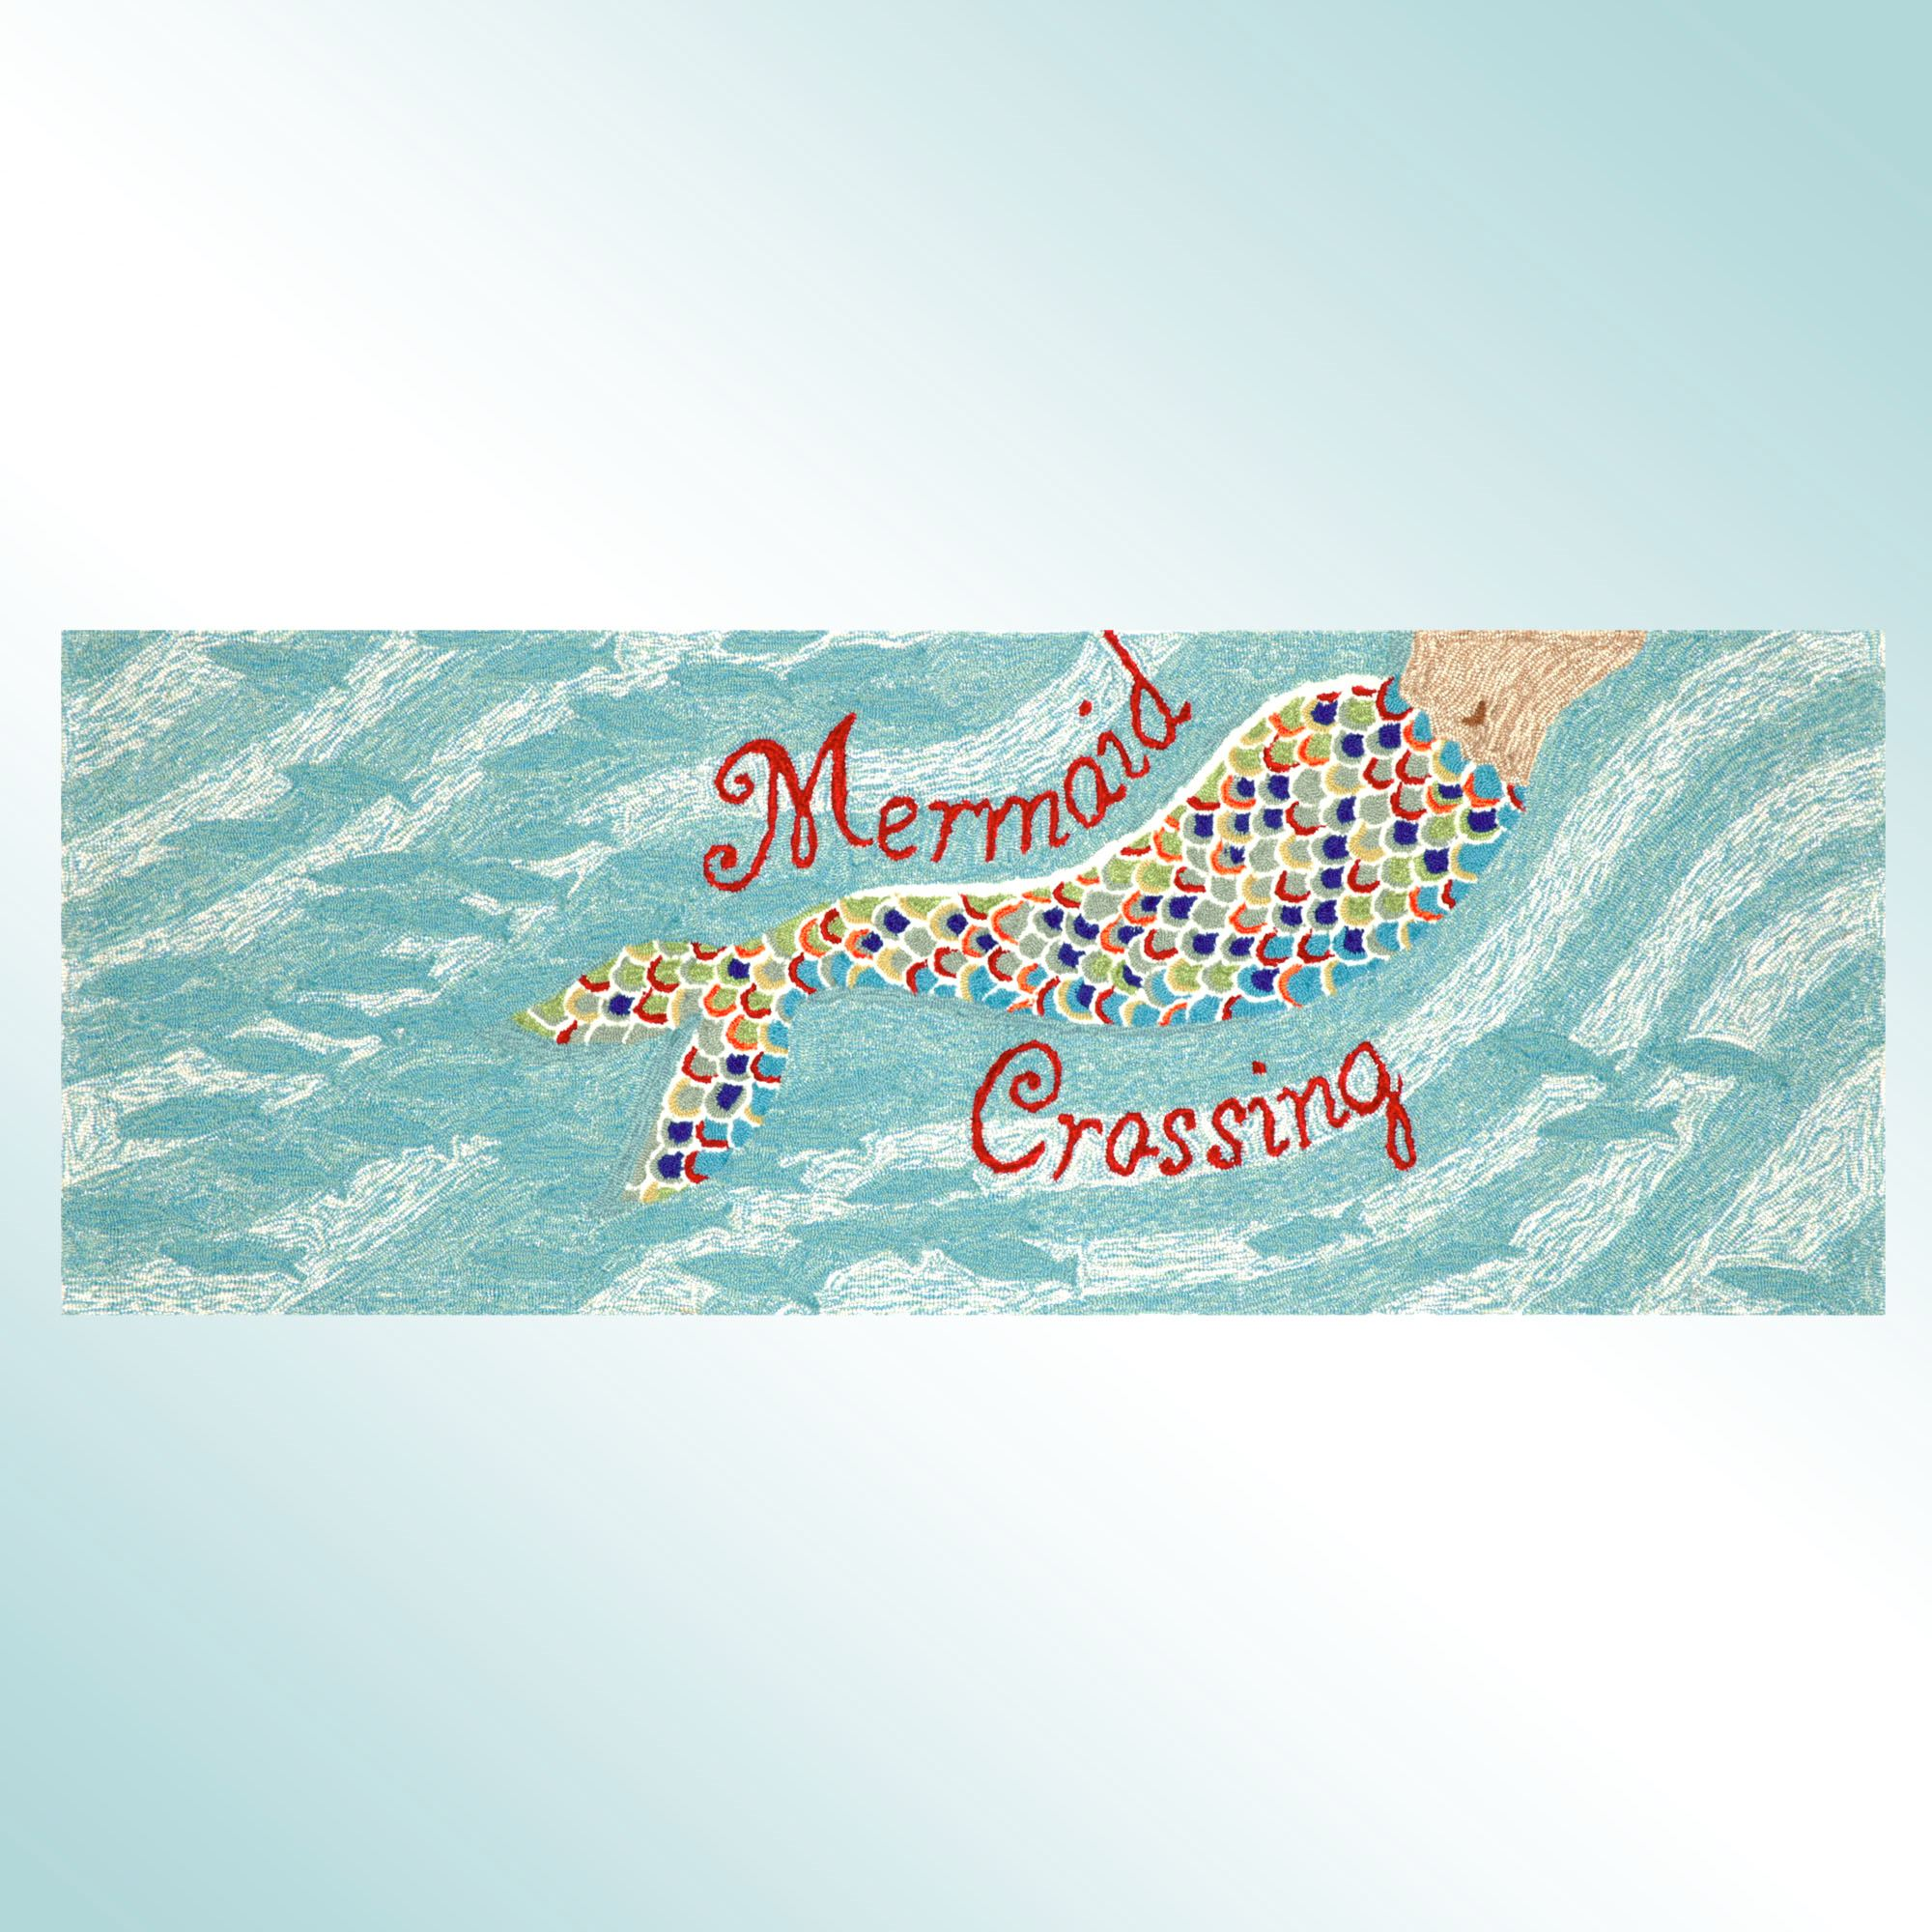 Mermaid Crossing Indoor Outdoor Rug Runner by Liora Manne